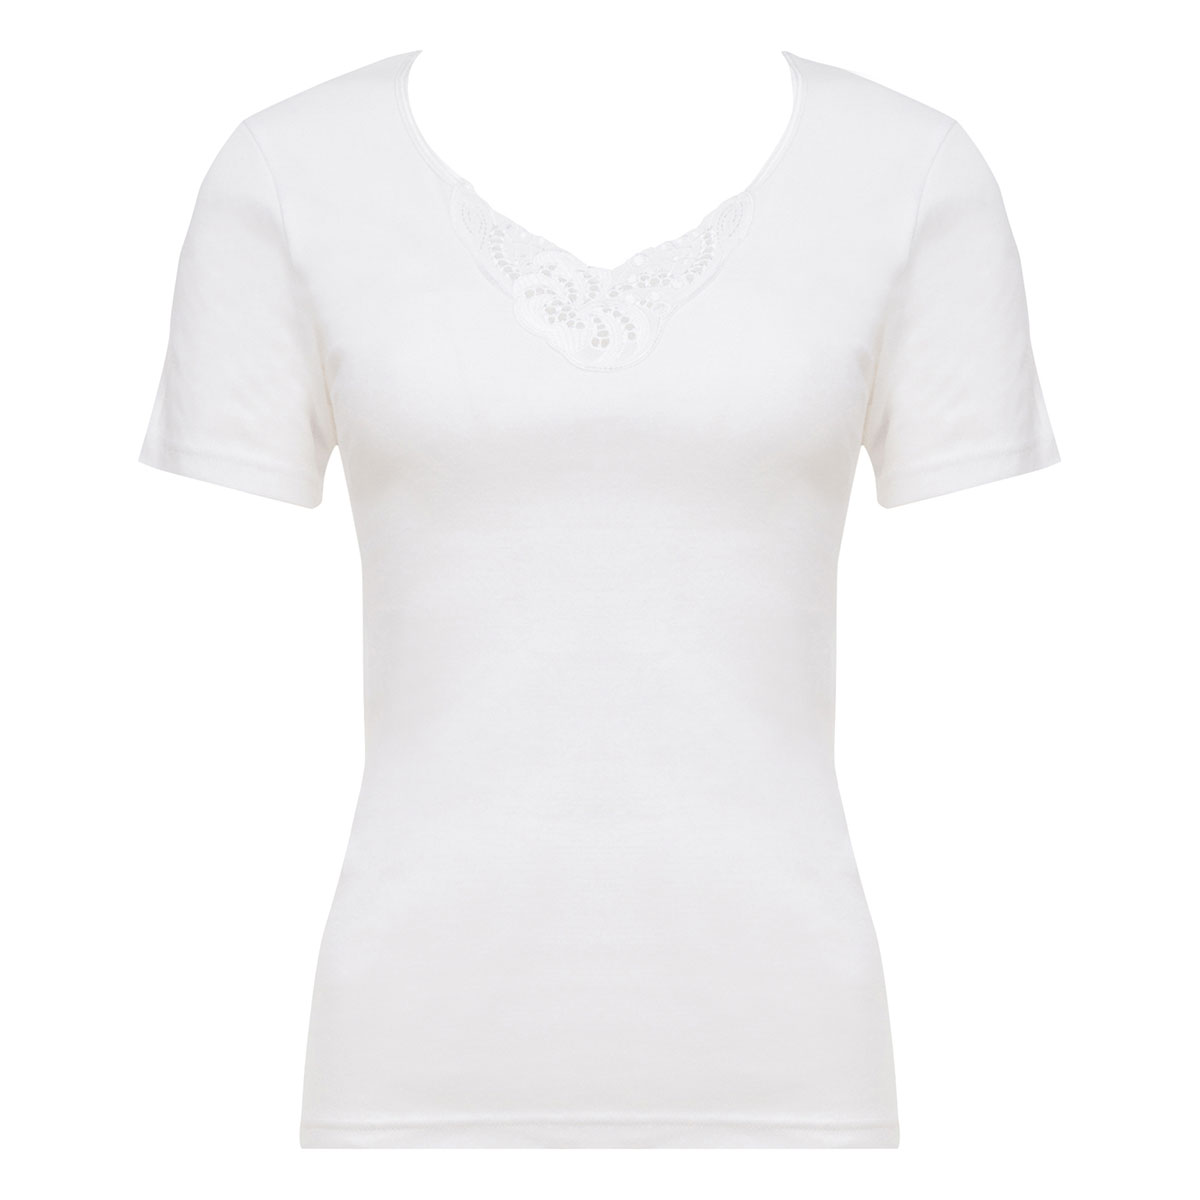 Top manches courtes blanc - Cotton Feminine-PLAYTEX